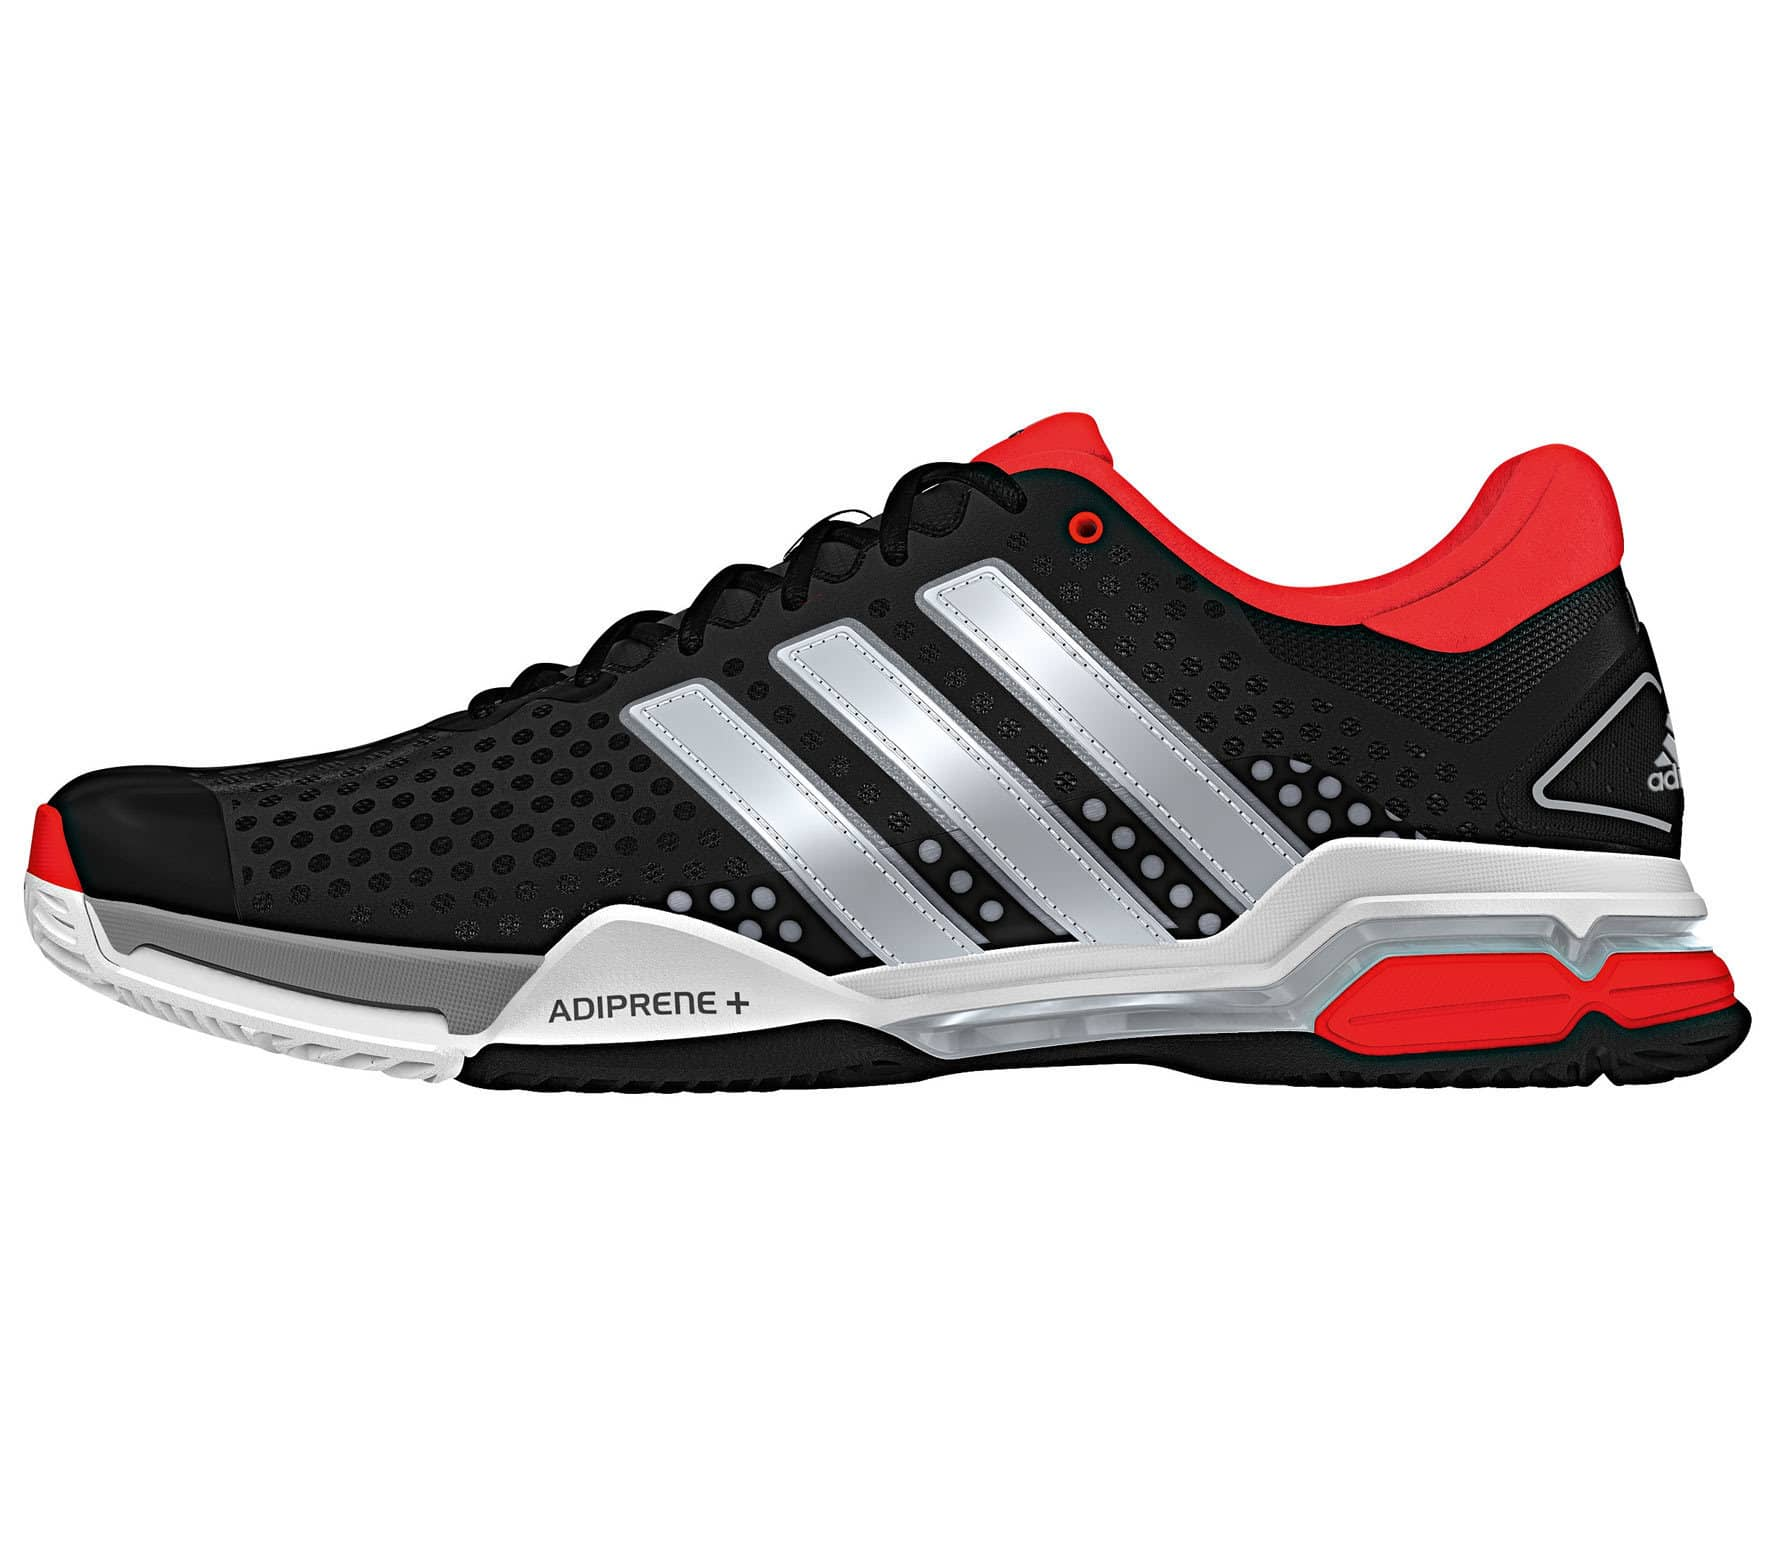 competitive price 58e4b c462f Adidas - Barricade Team 4 Synthetic Allcourt Heren Tennis schoen (zwart rood)